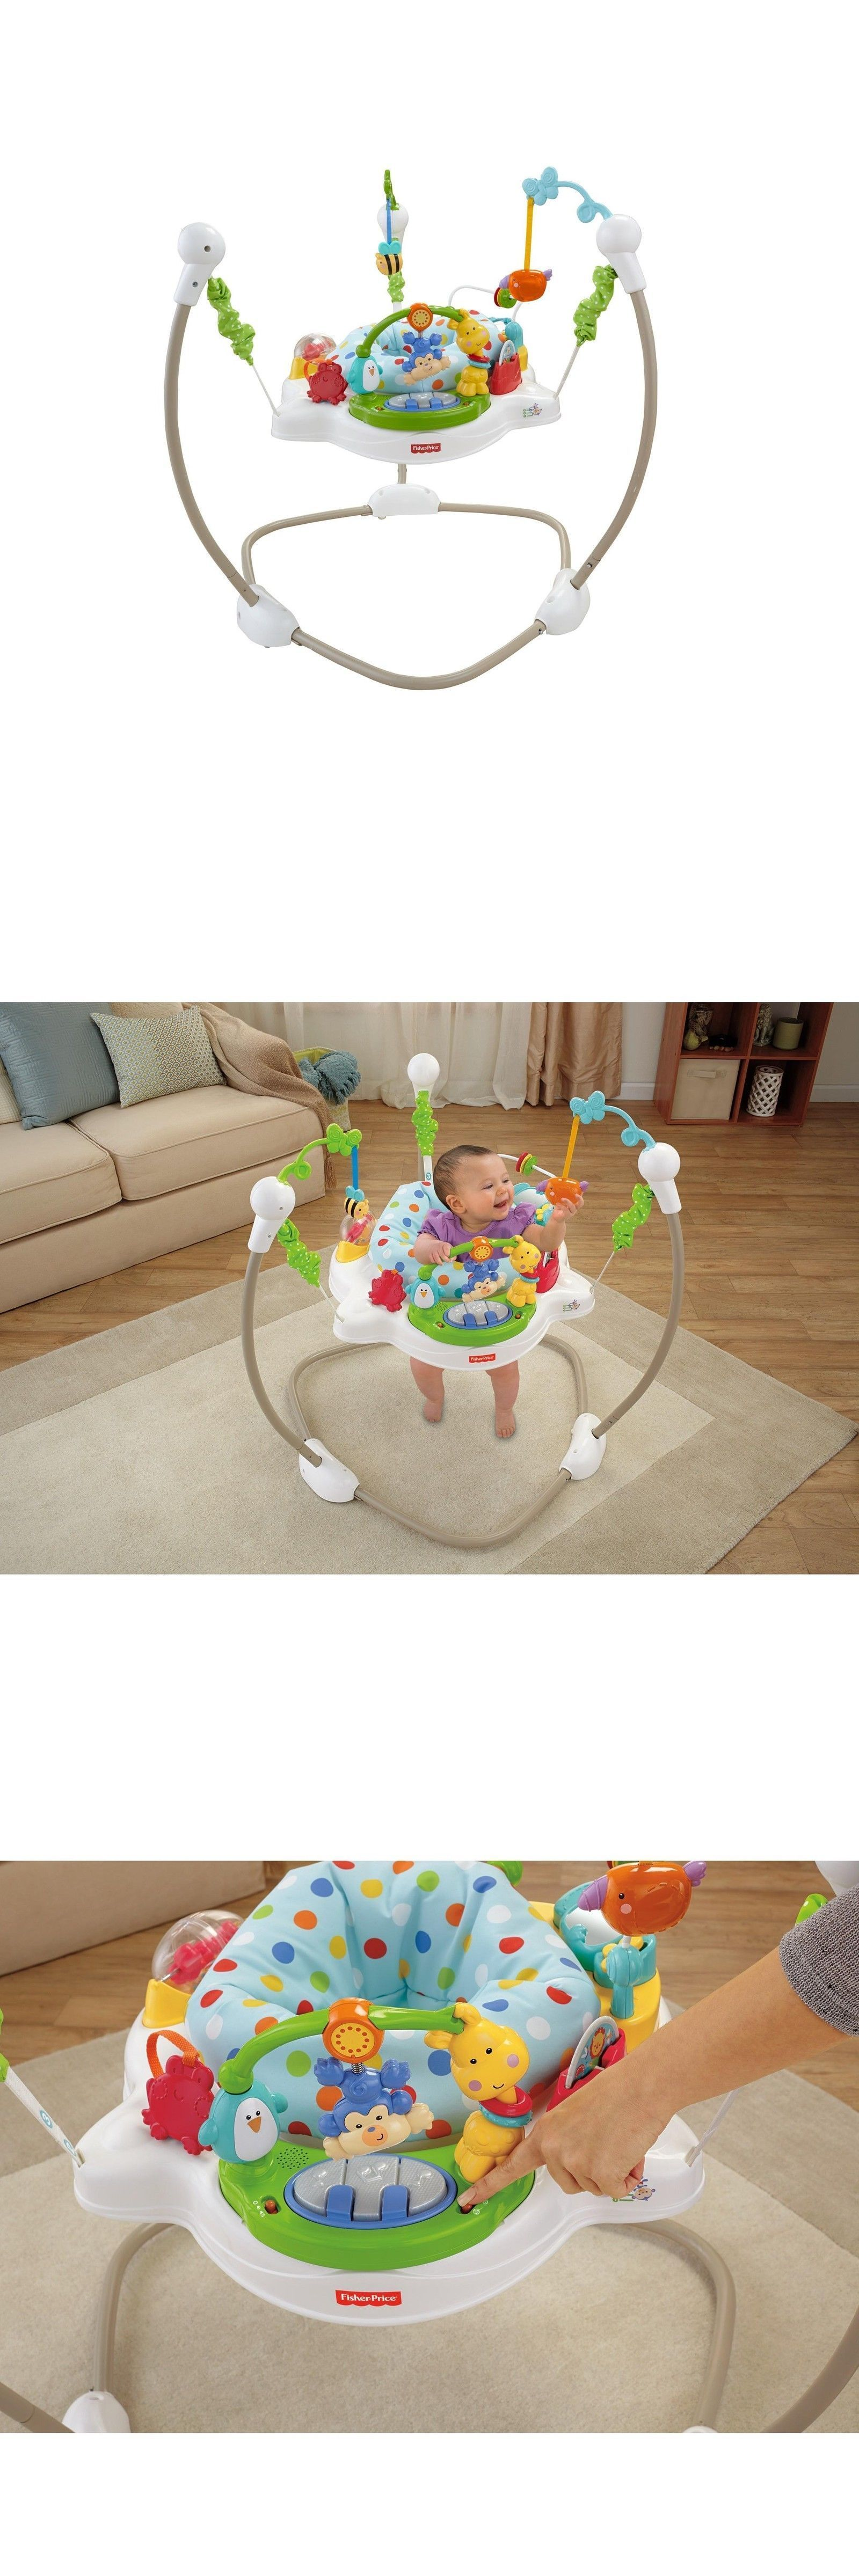 a062b2d46 Baby Jumping Exercisers 117032  Fisher-Price Zoo Party Jumperoo ...